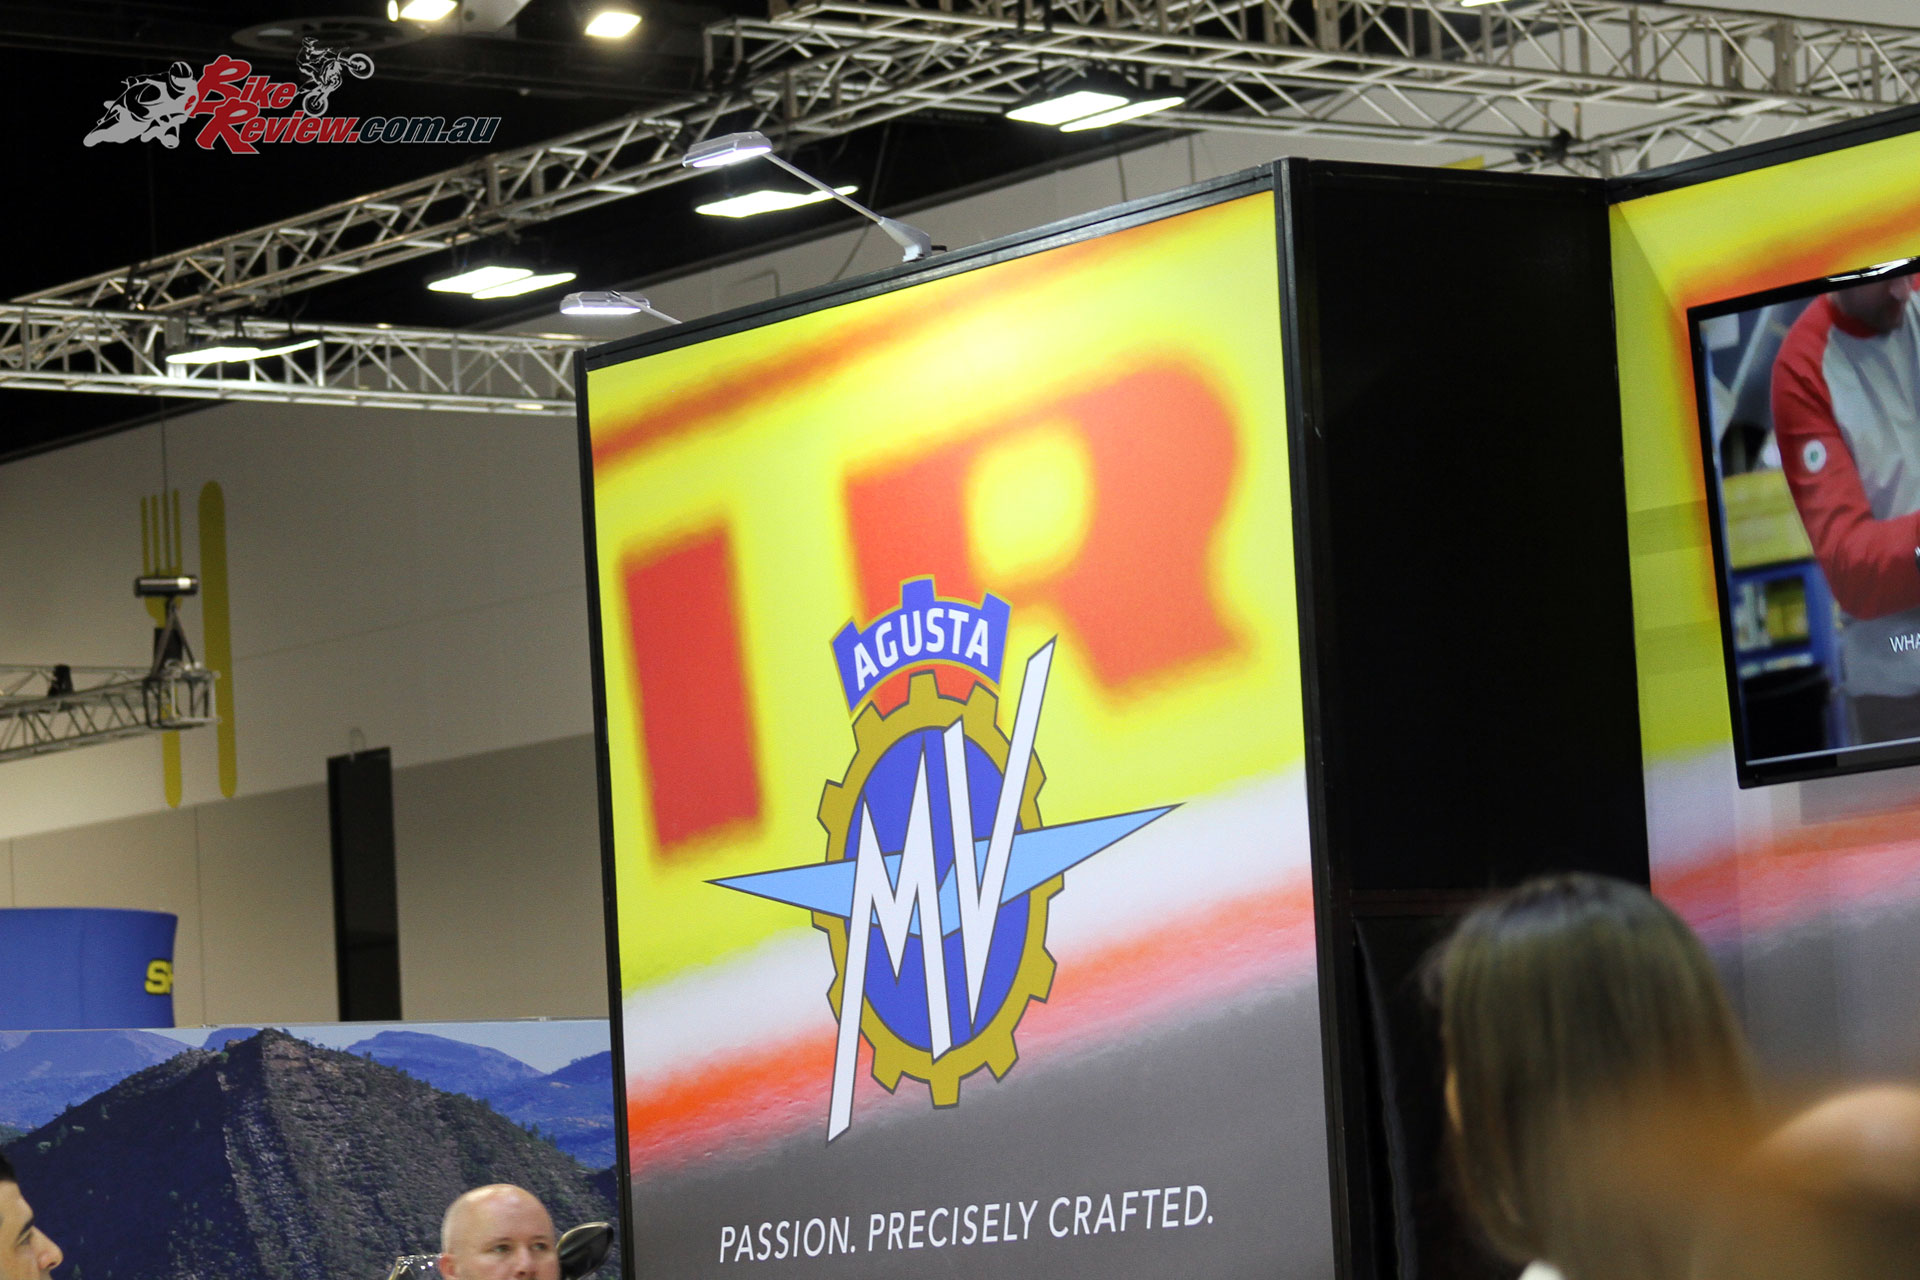 MV Agusta displayed their latest offerings